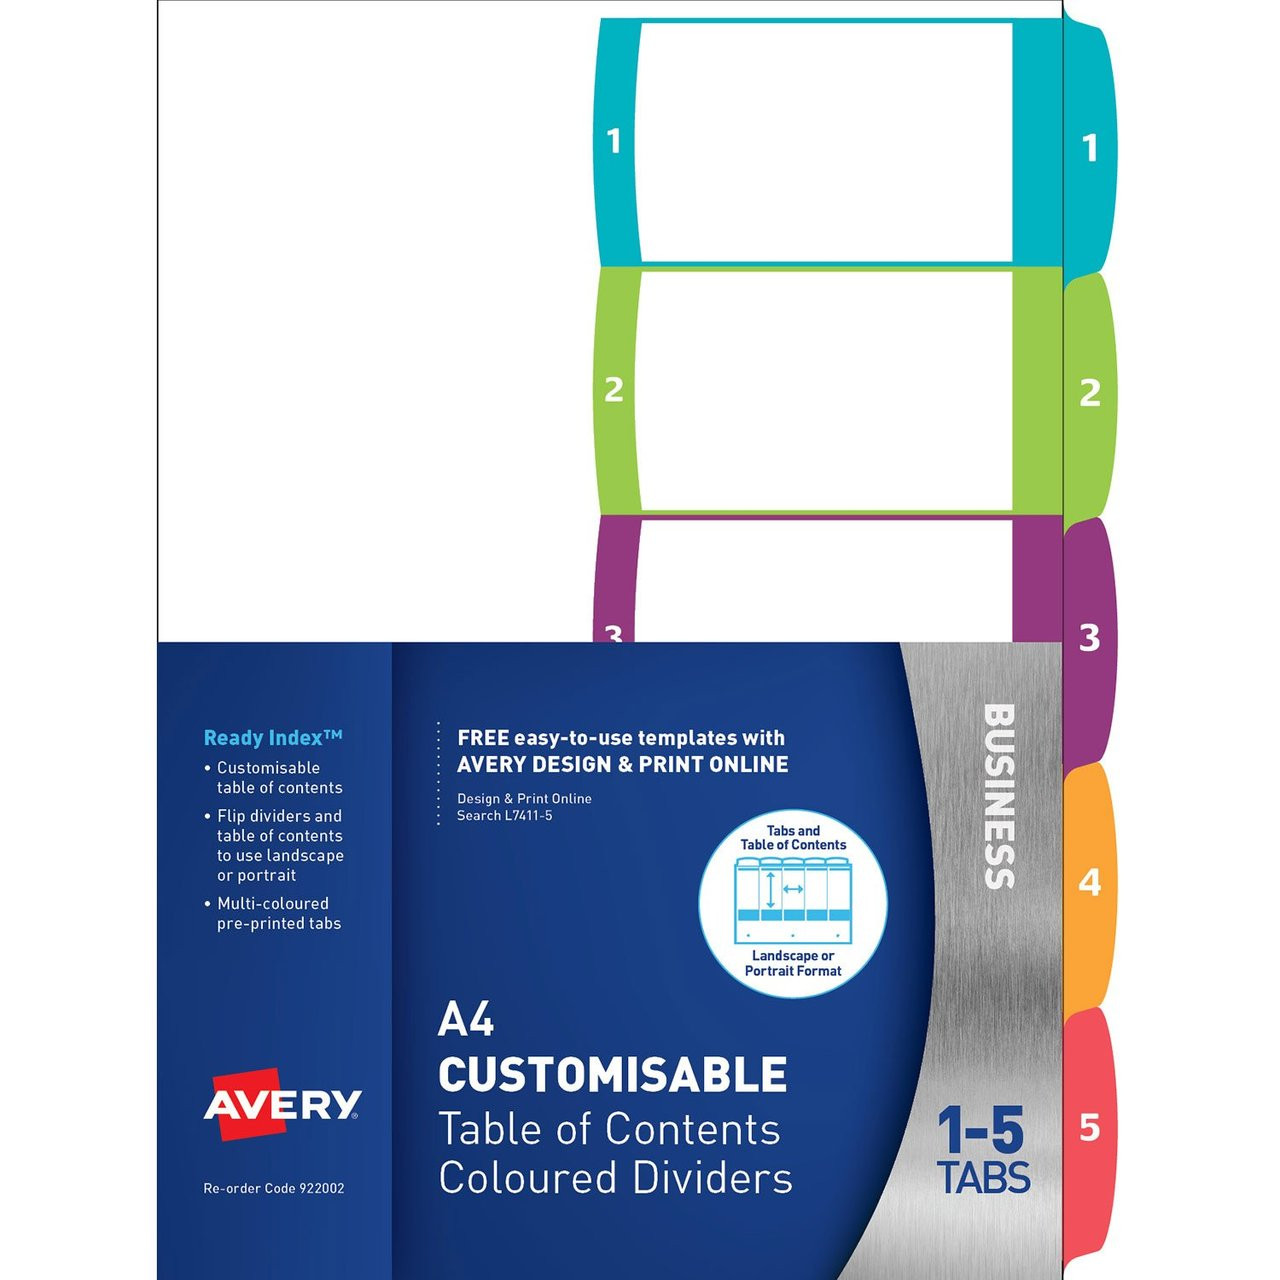 AVERY 922002 CUSTOMISABLE TABLE OF CONTENTS DIVIDERS 1-5 TABS  LANDSCAPE/PORTRAIT READY INDEX (922002 / L7411-5)